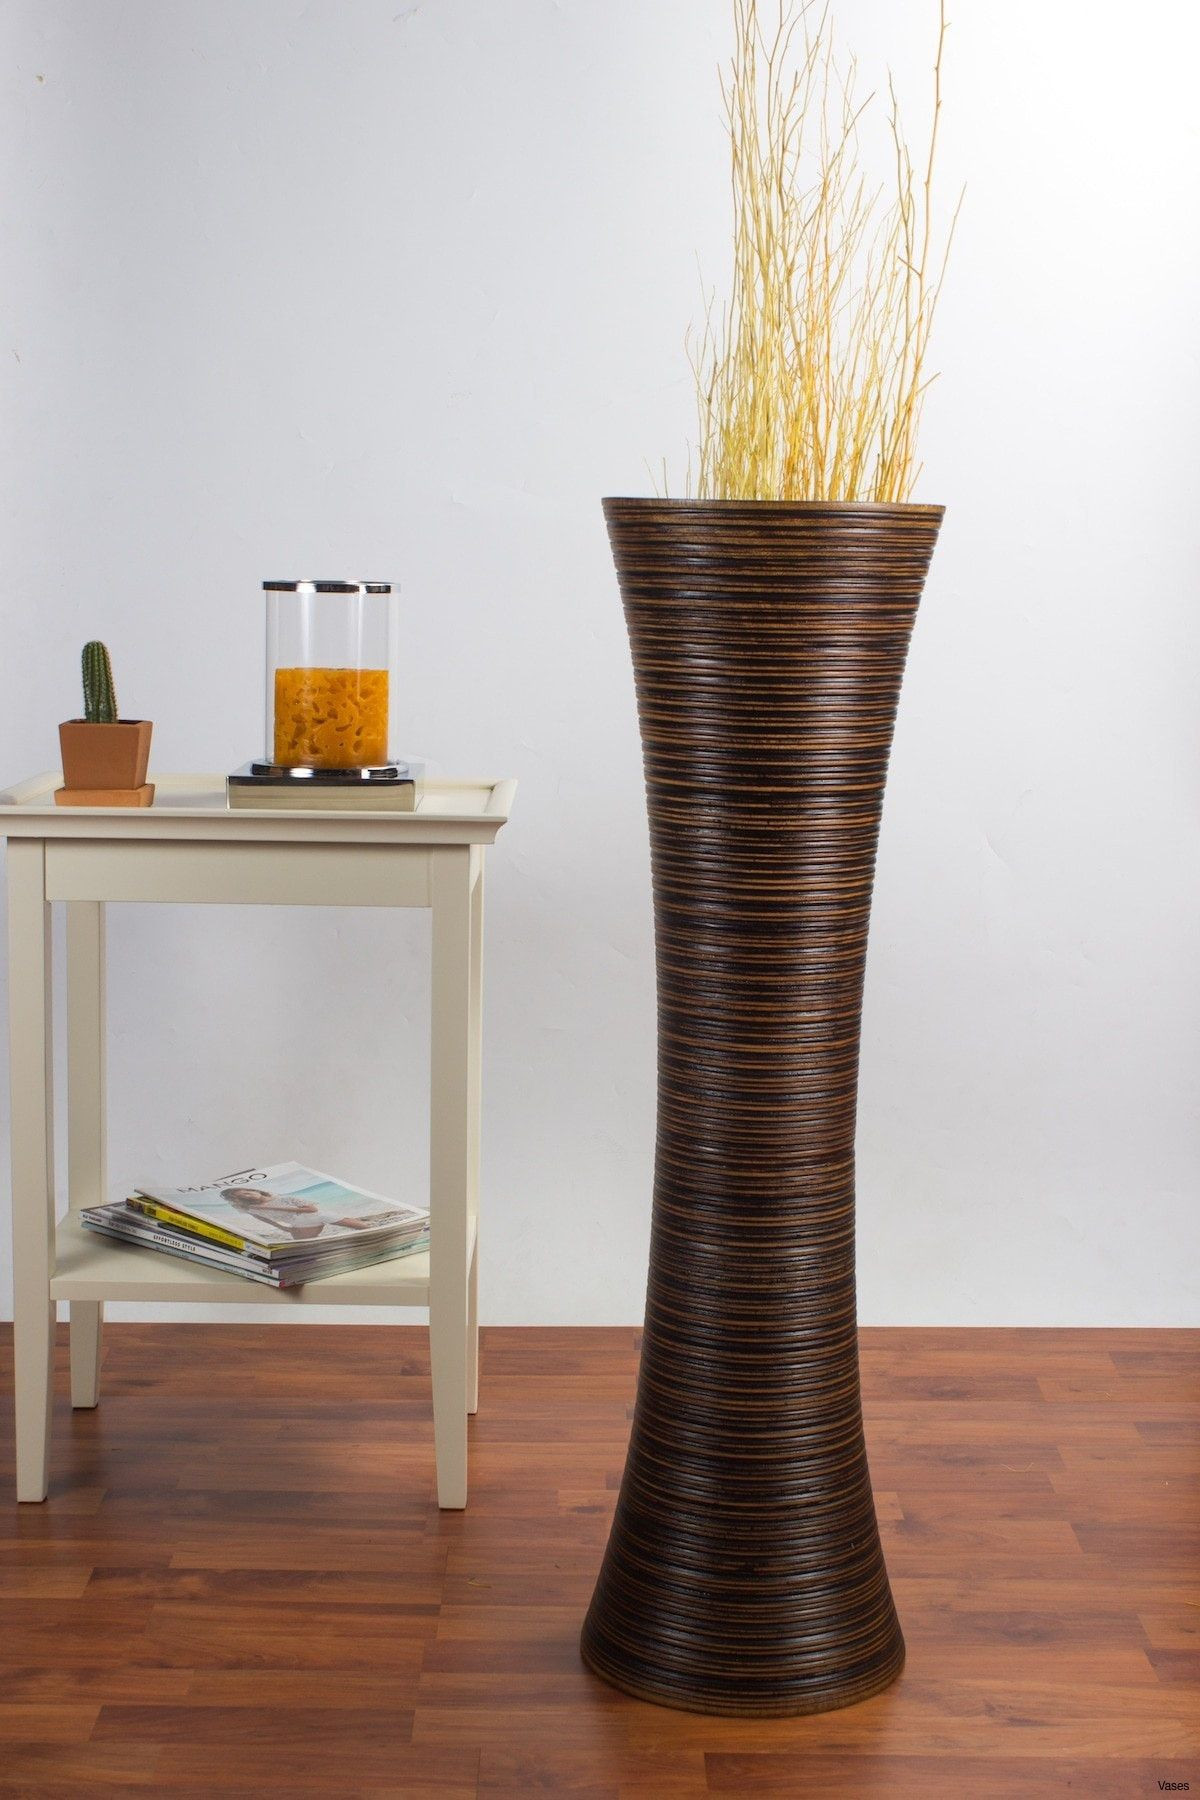 tall floor vases home decor of tall decorative vases luxury decorative floor vases fresh d dkbrw intended for tall decorative vases luxury decorative floor vases fresh d dkbrw 5749 1h vases tall brown i